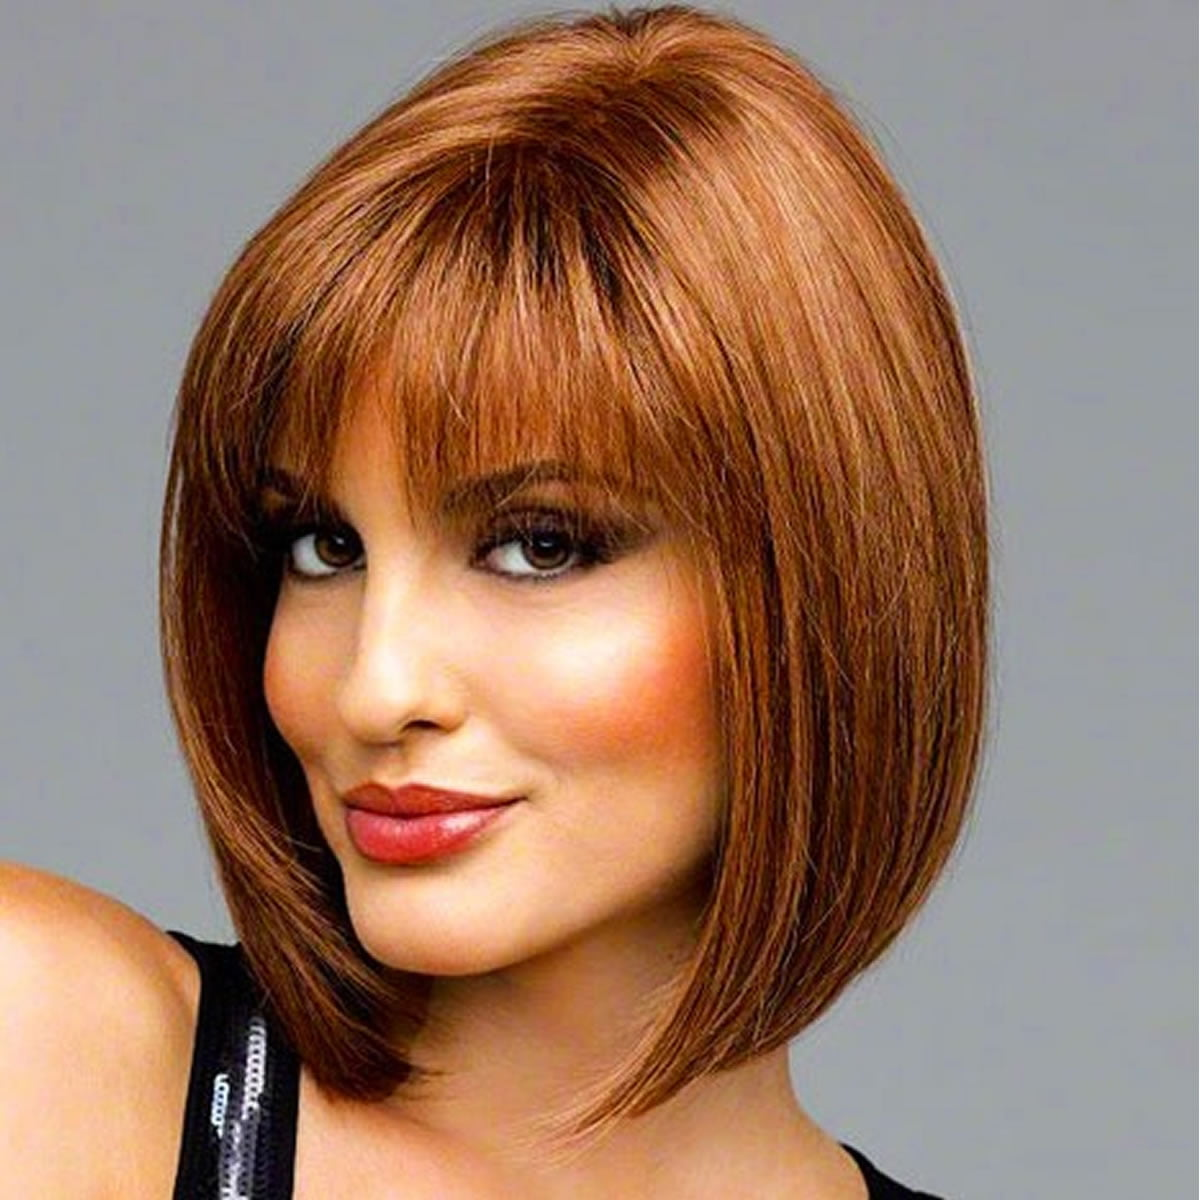 hair bob style the best 30 bob haircuts 2018 hairstyles for 6289